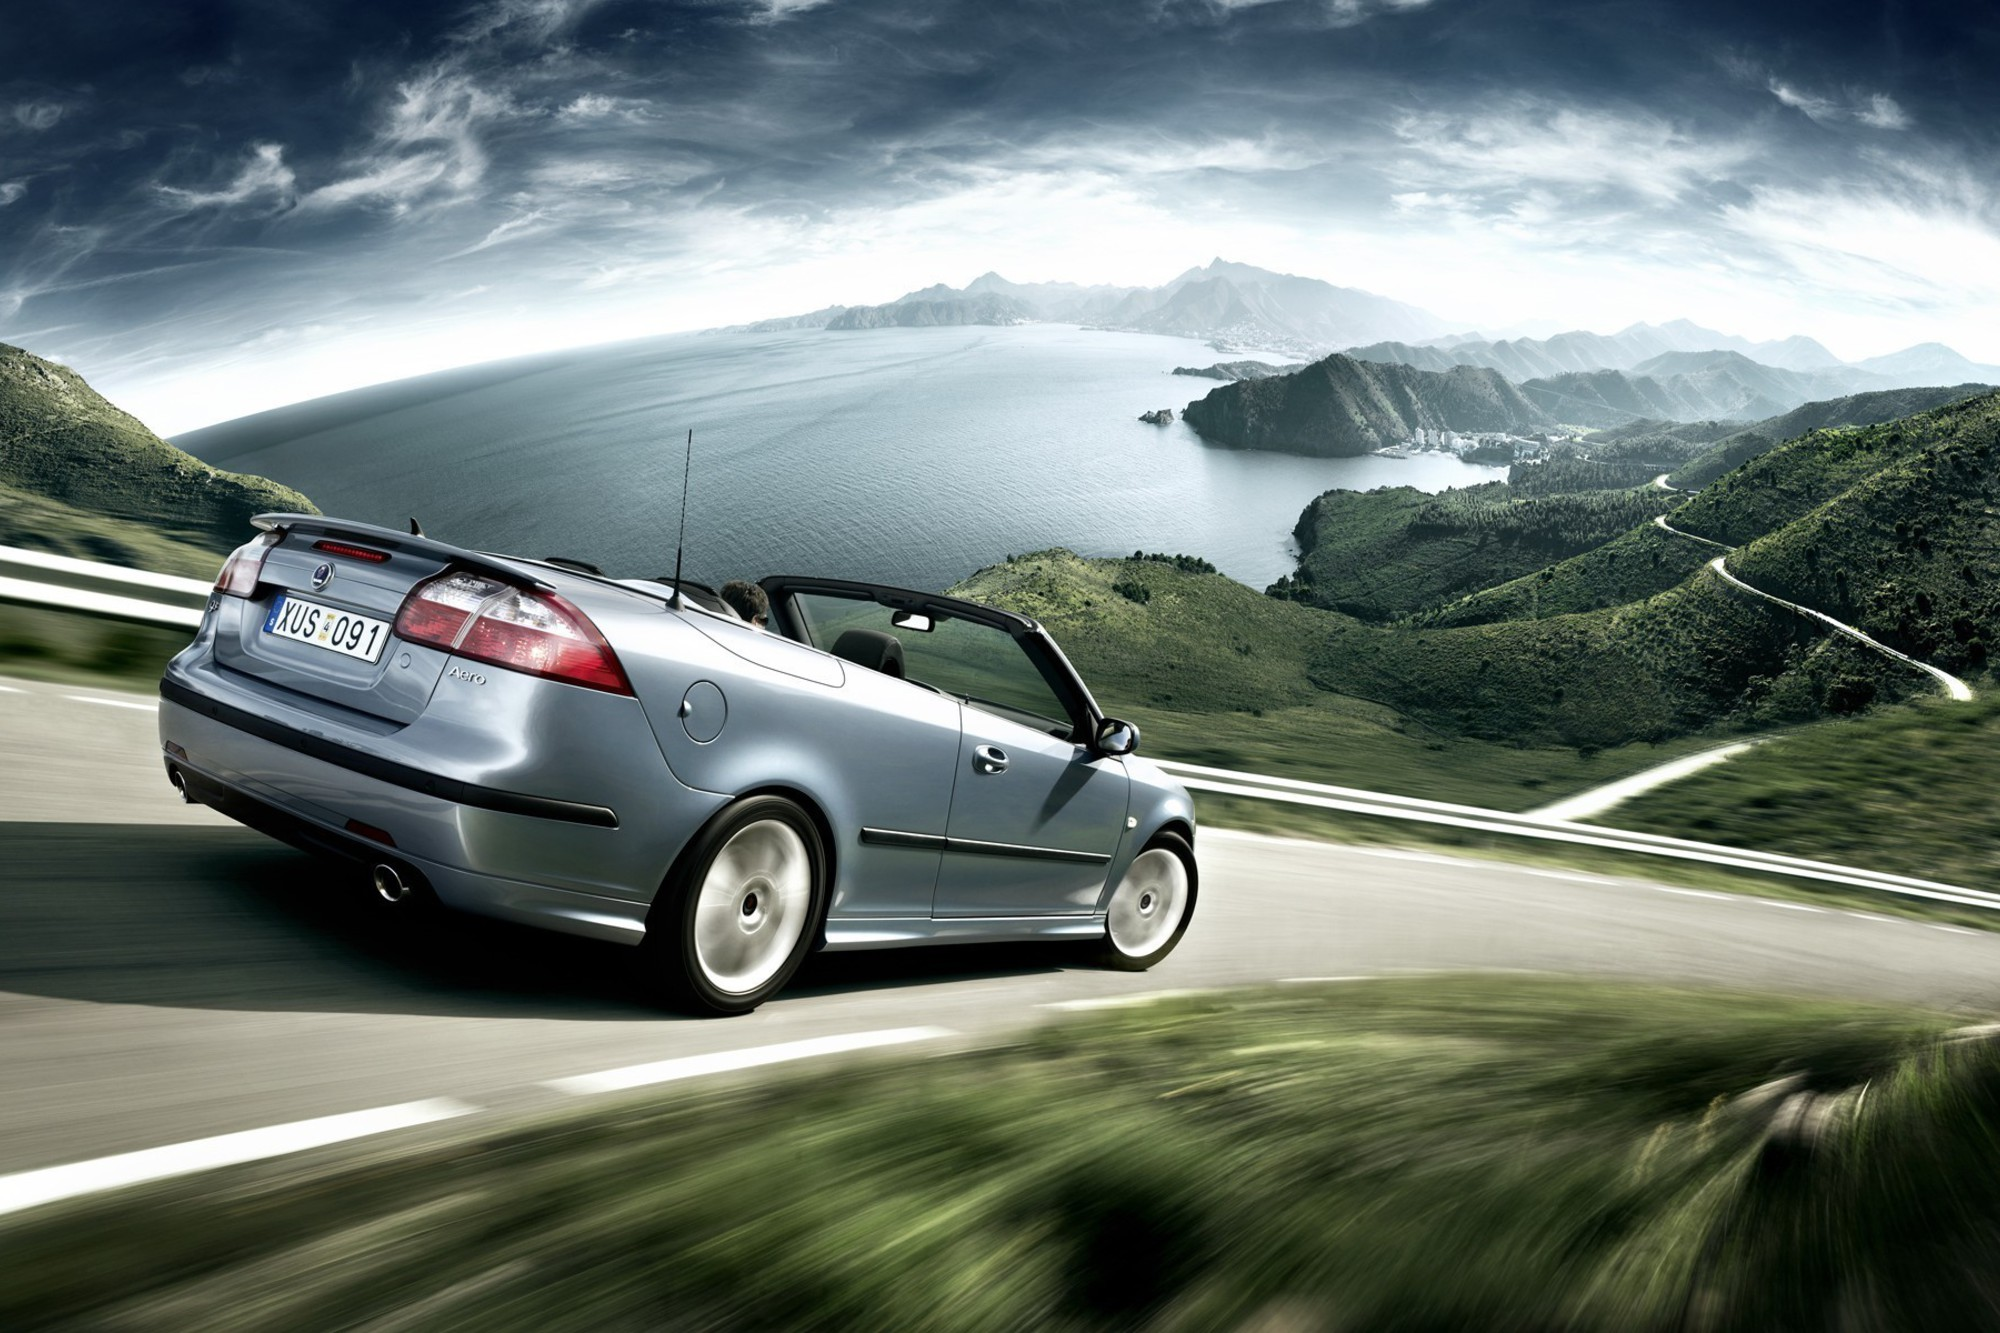 cars saab wallpaper 1920x1200 - photo #2